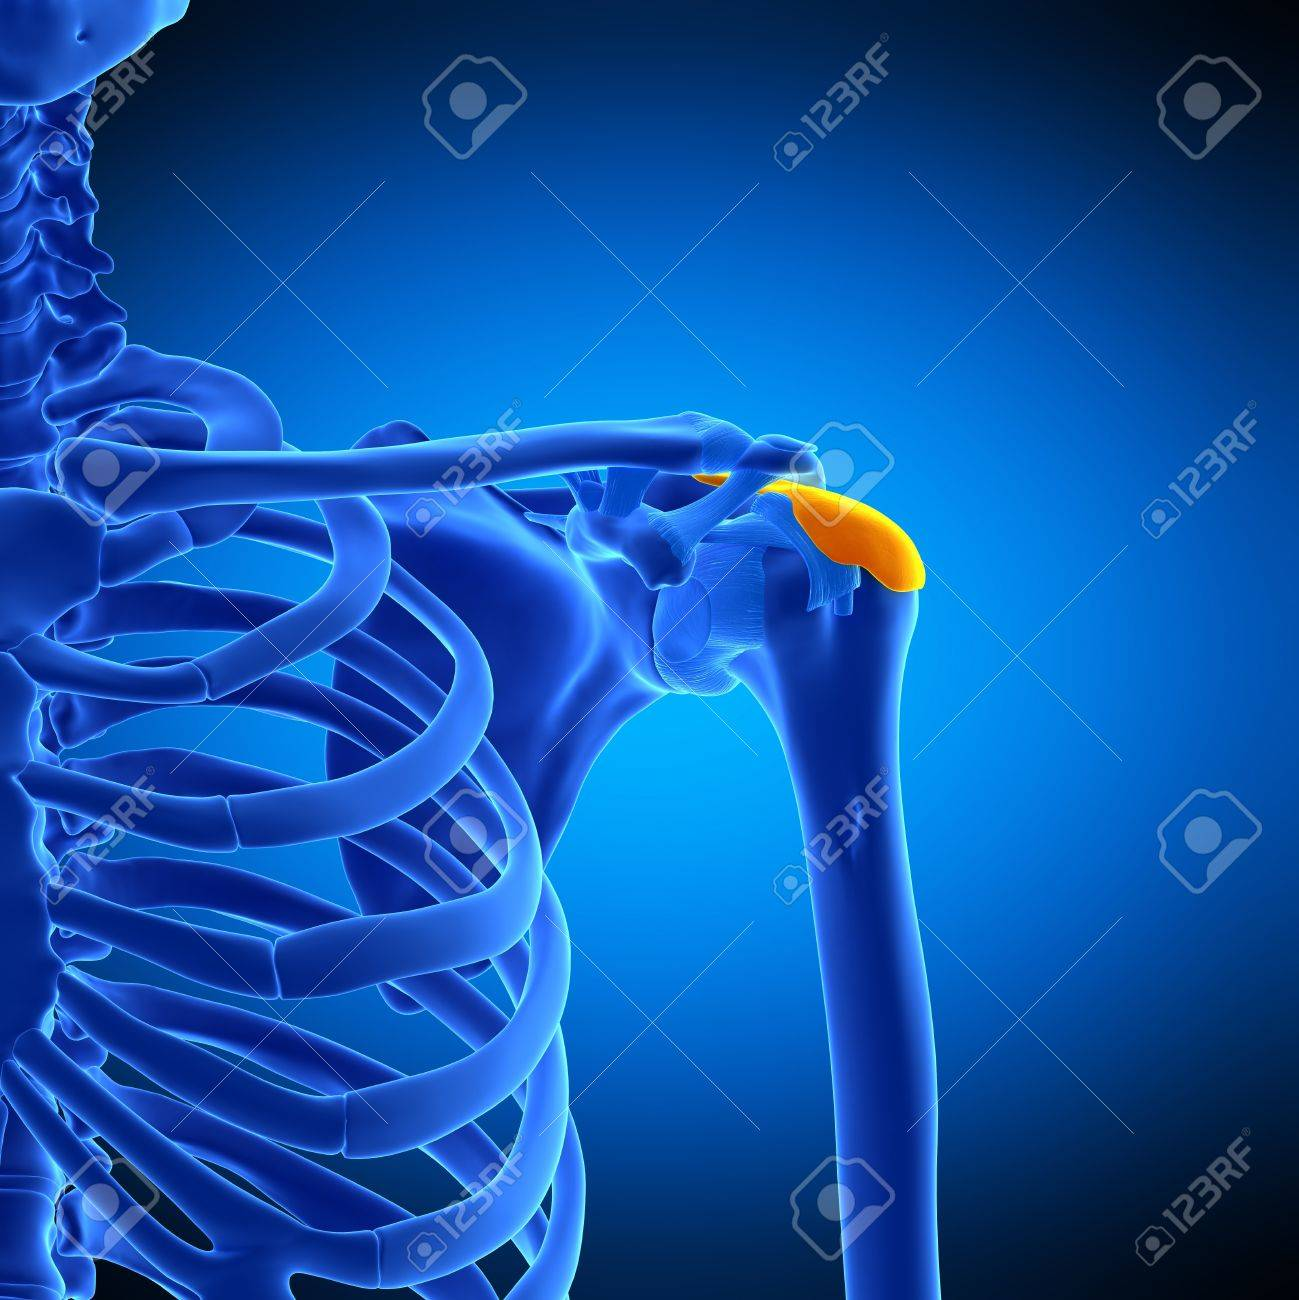 Shoulder Bursa Illustration Stock Photo Picture And Royalty Free